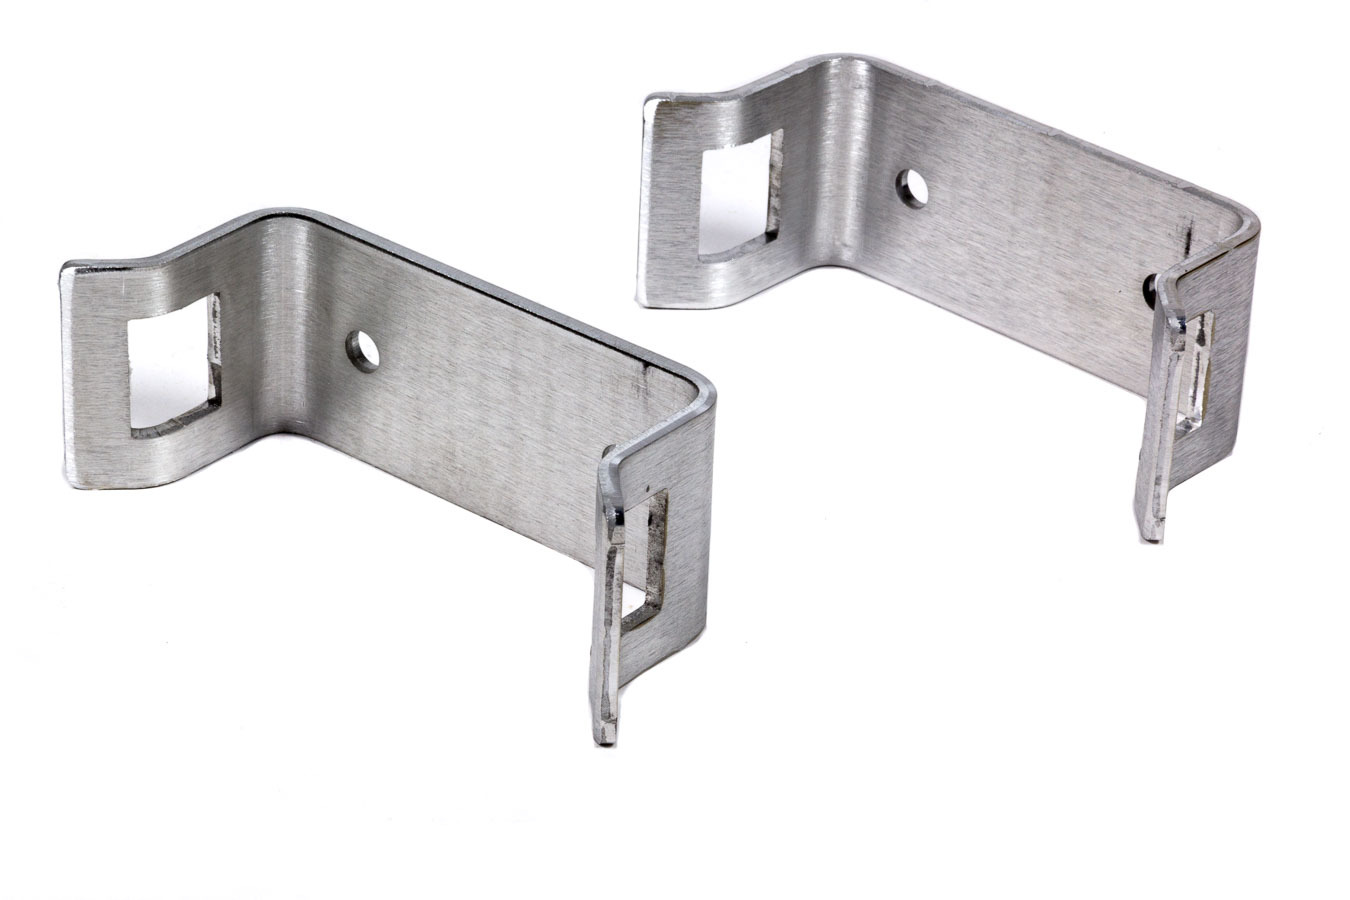 Mount Brackets Flat For RS5-RS10-LT10 PAIR